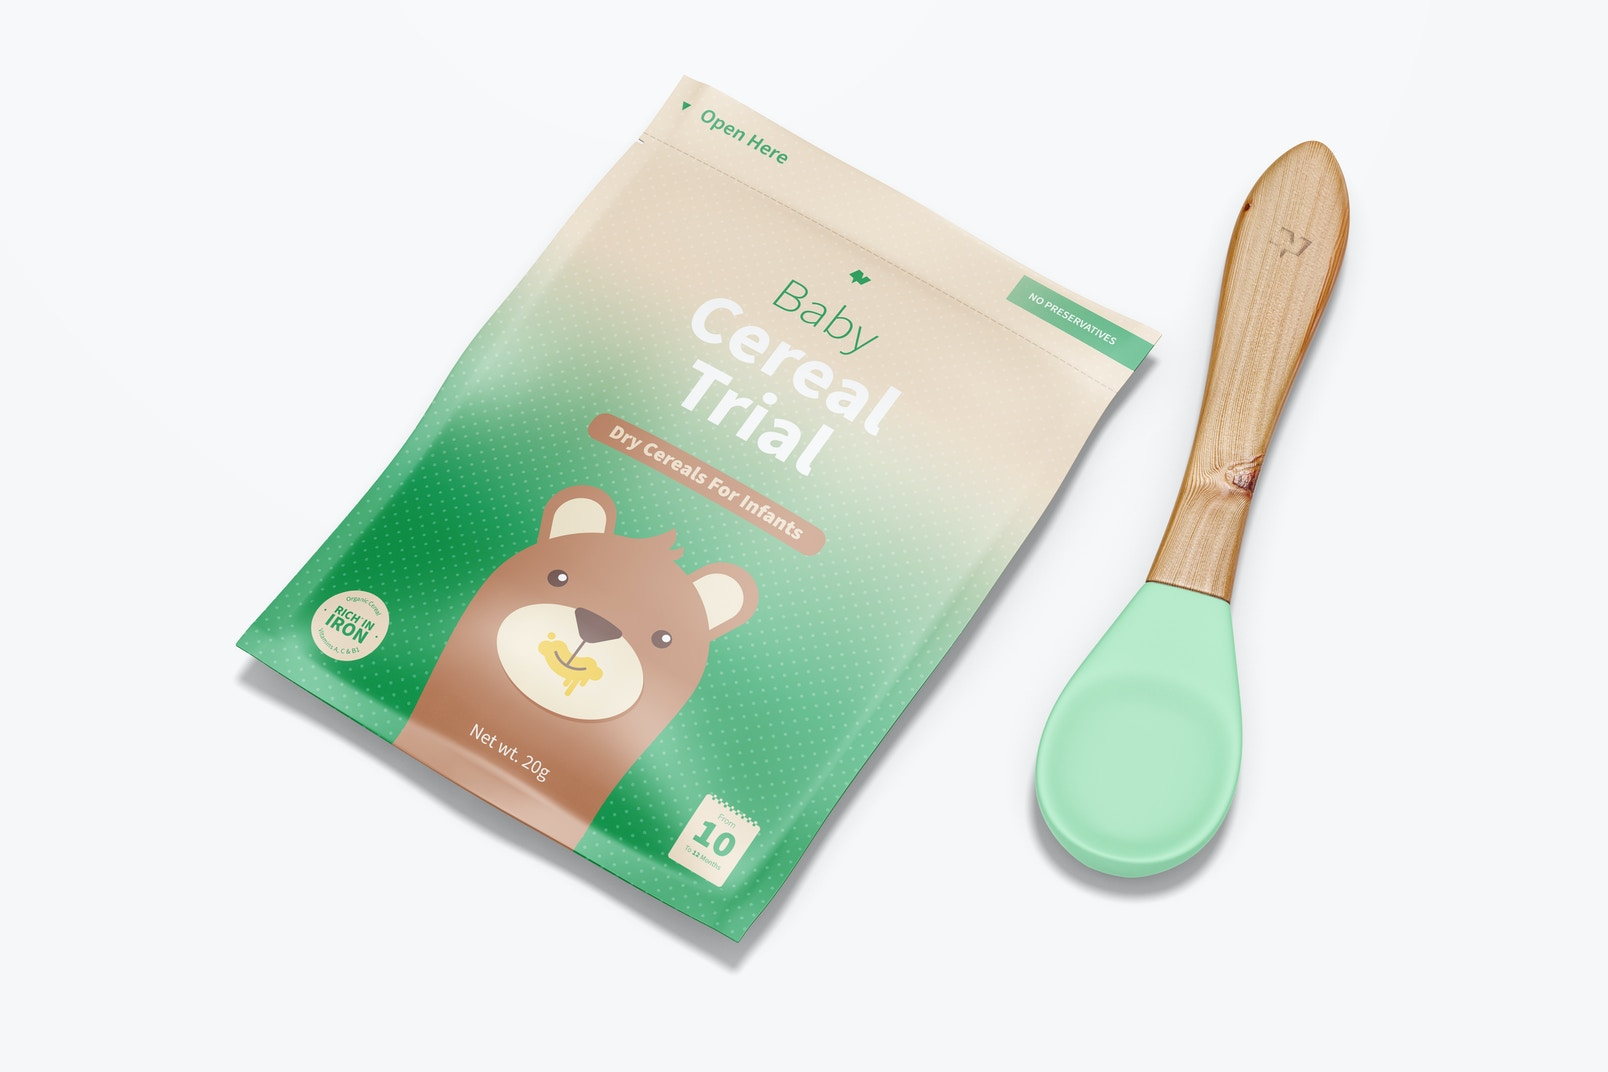 Baby Cereal Trial Pack With Spoon Mockup